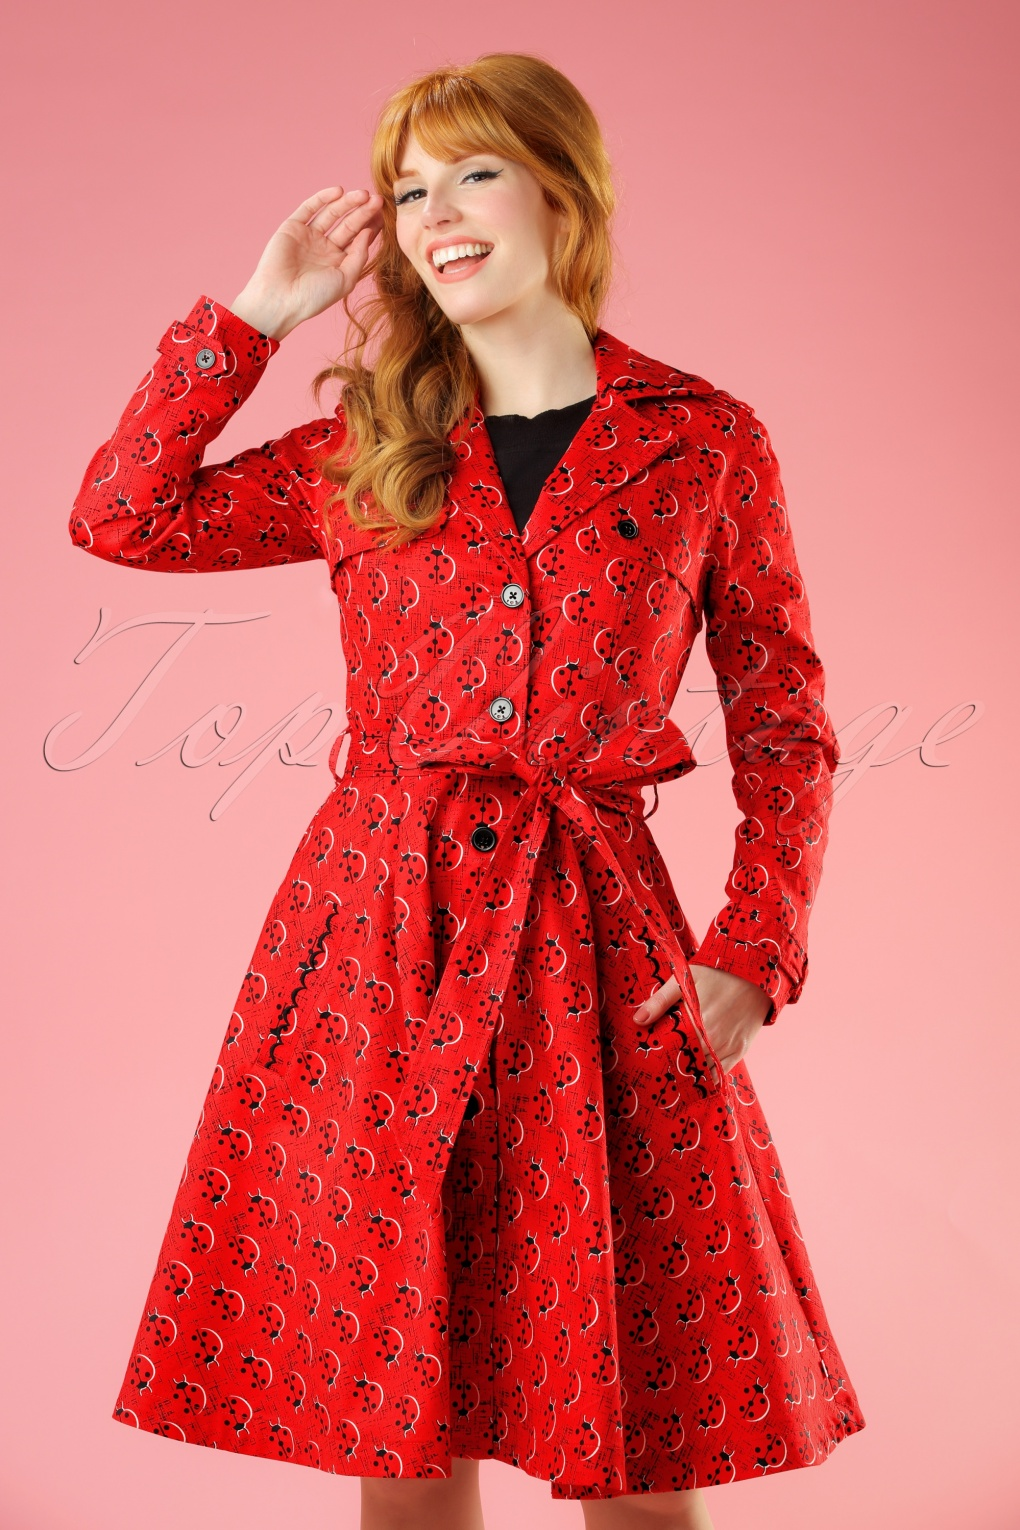 Retro Vintage Style Coats, Jackets, Fur Stoles 50s Glienicke Spy Swap Trenchcoat in Lovely Ladybug Red £140.69 AT vintagedancer.com